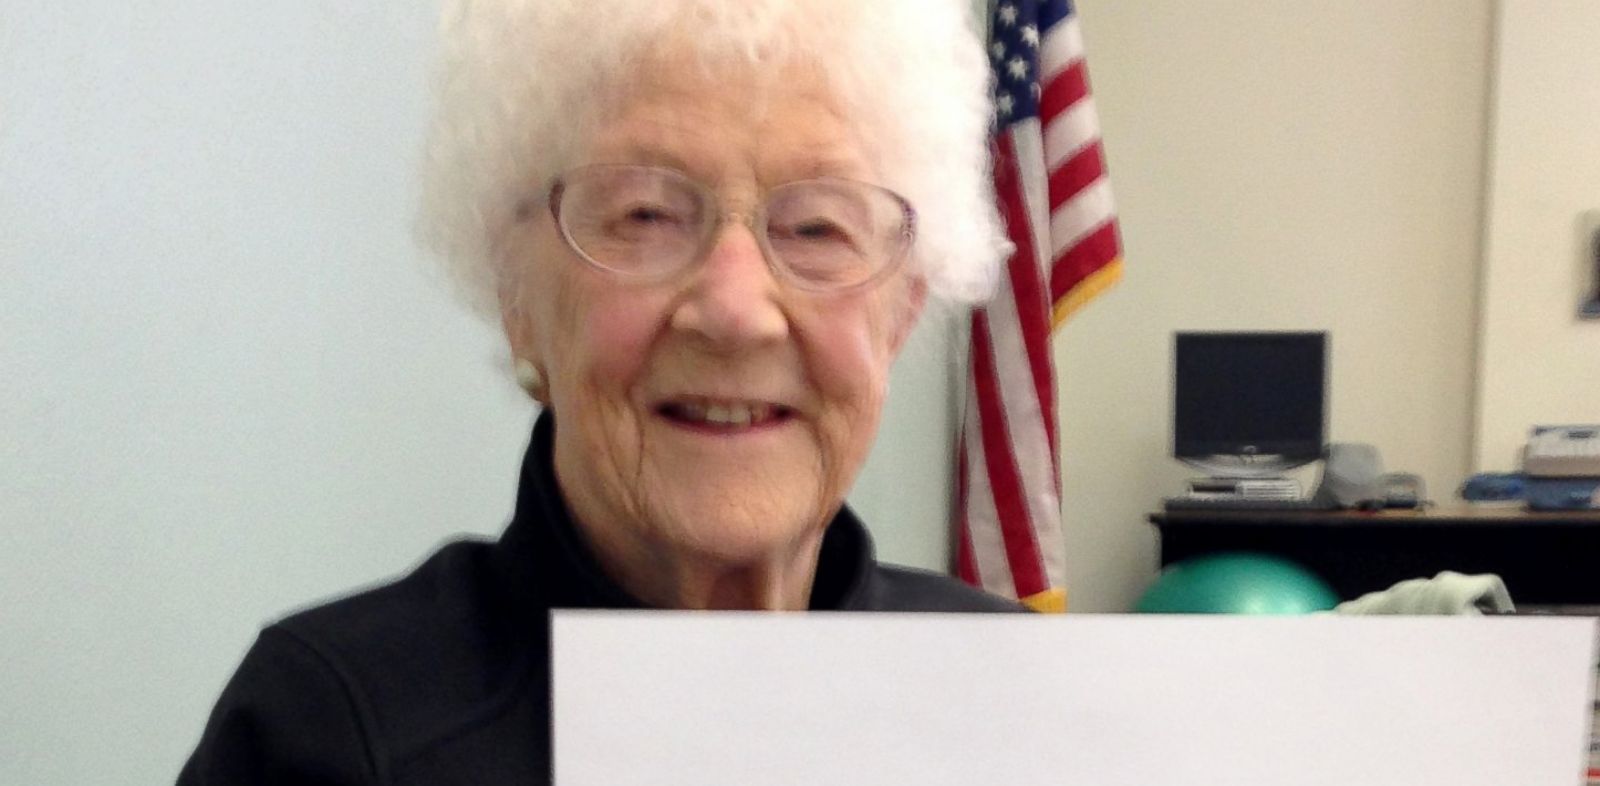 PHOTO: At 106, Edythe Kirchmaier is Facebooks oldest registered user.